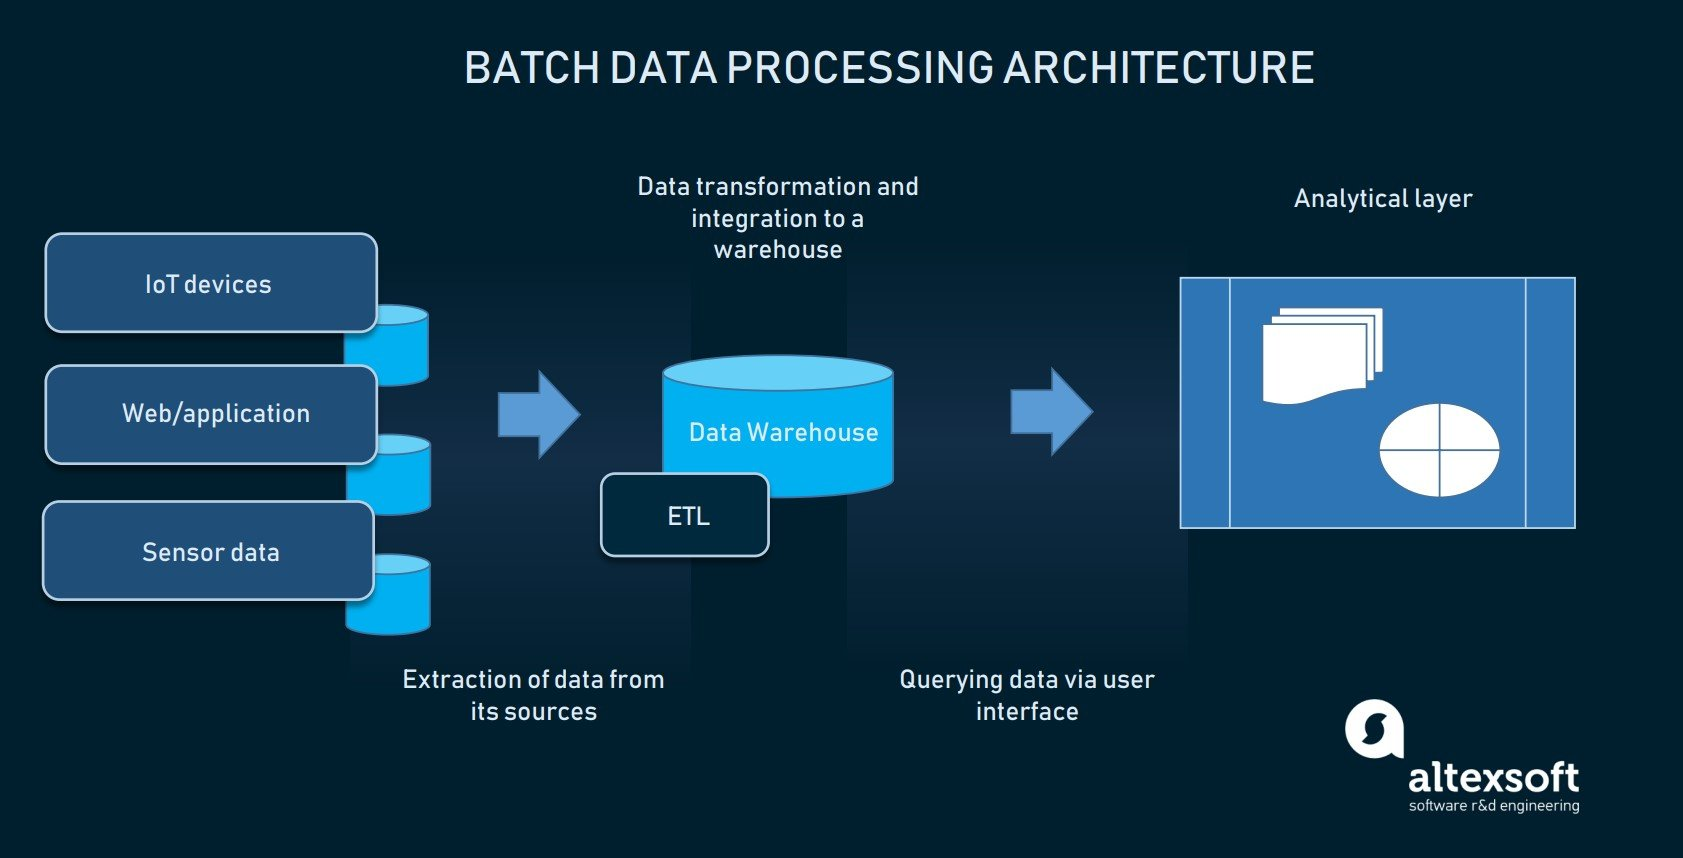 Batch processing architectural components